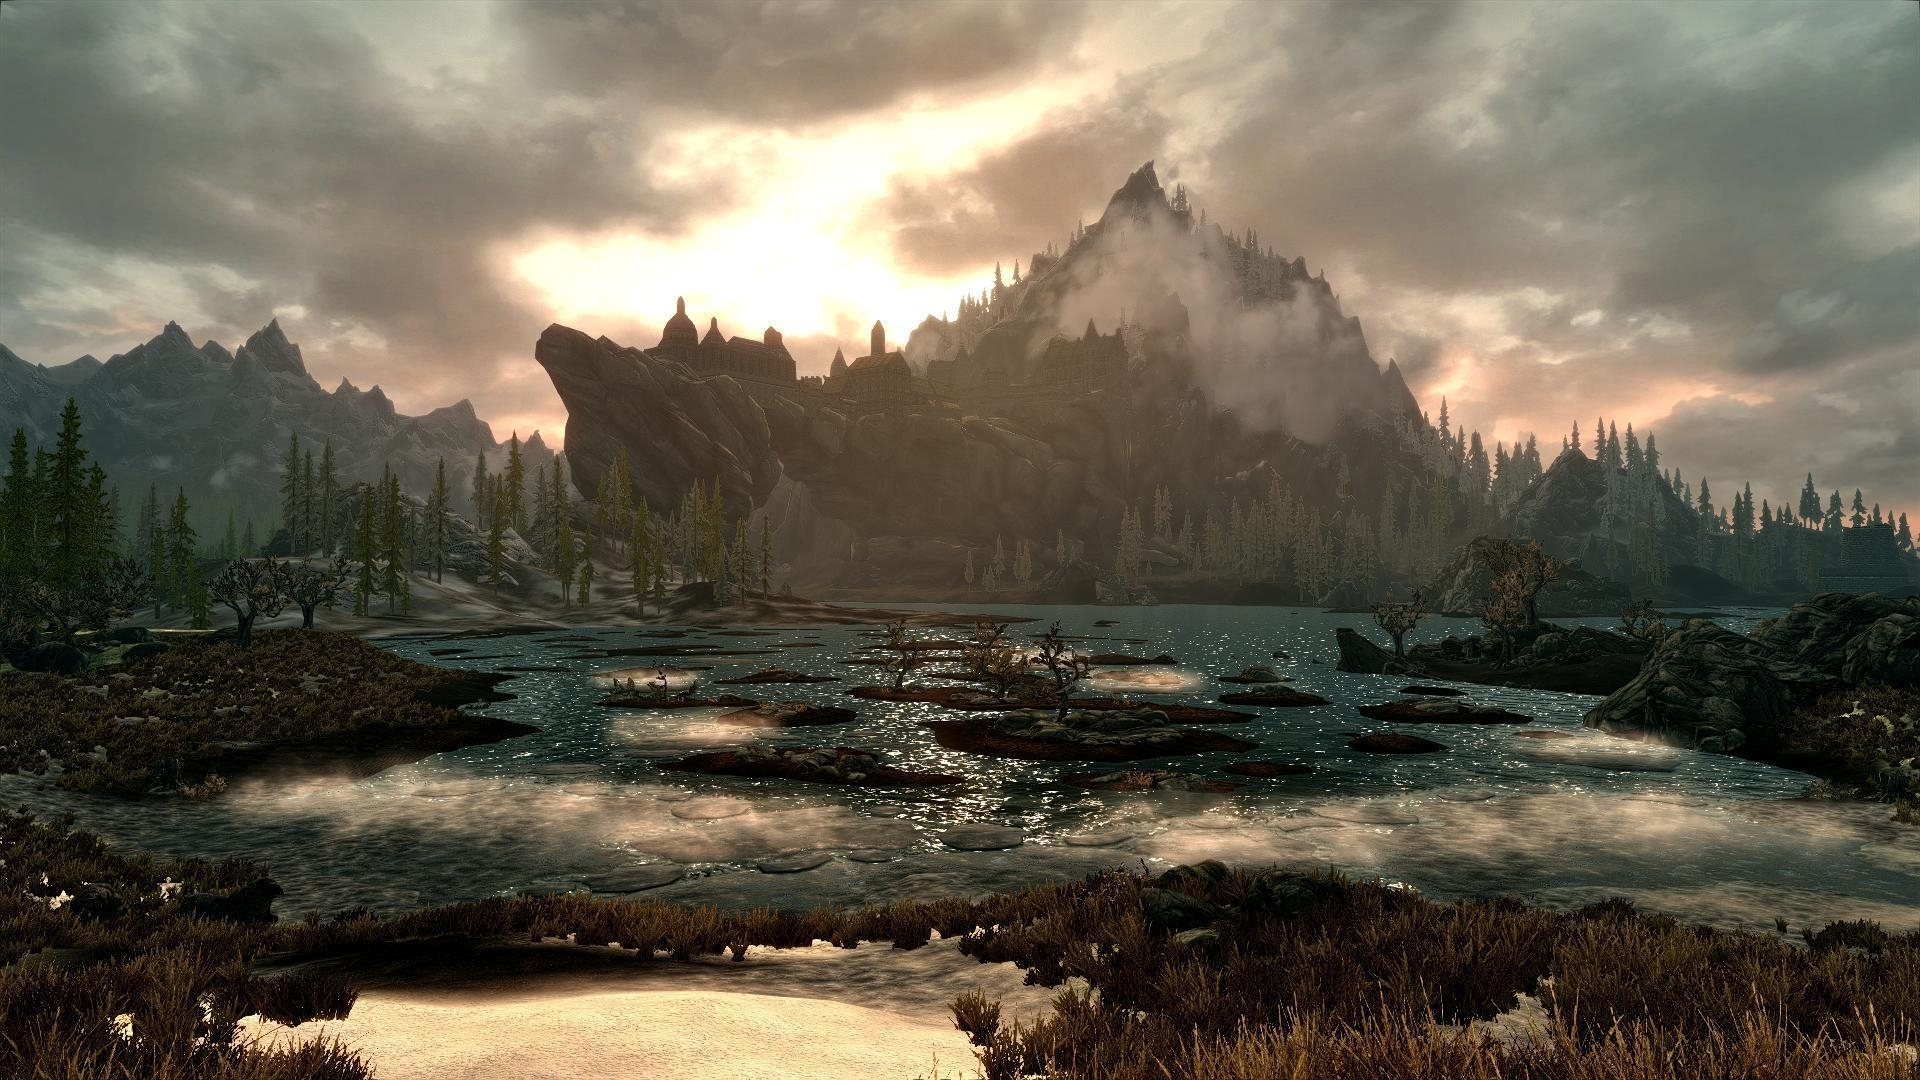 skyrim scenery wallpapers - wallpaper cave